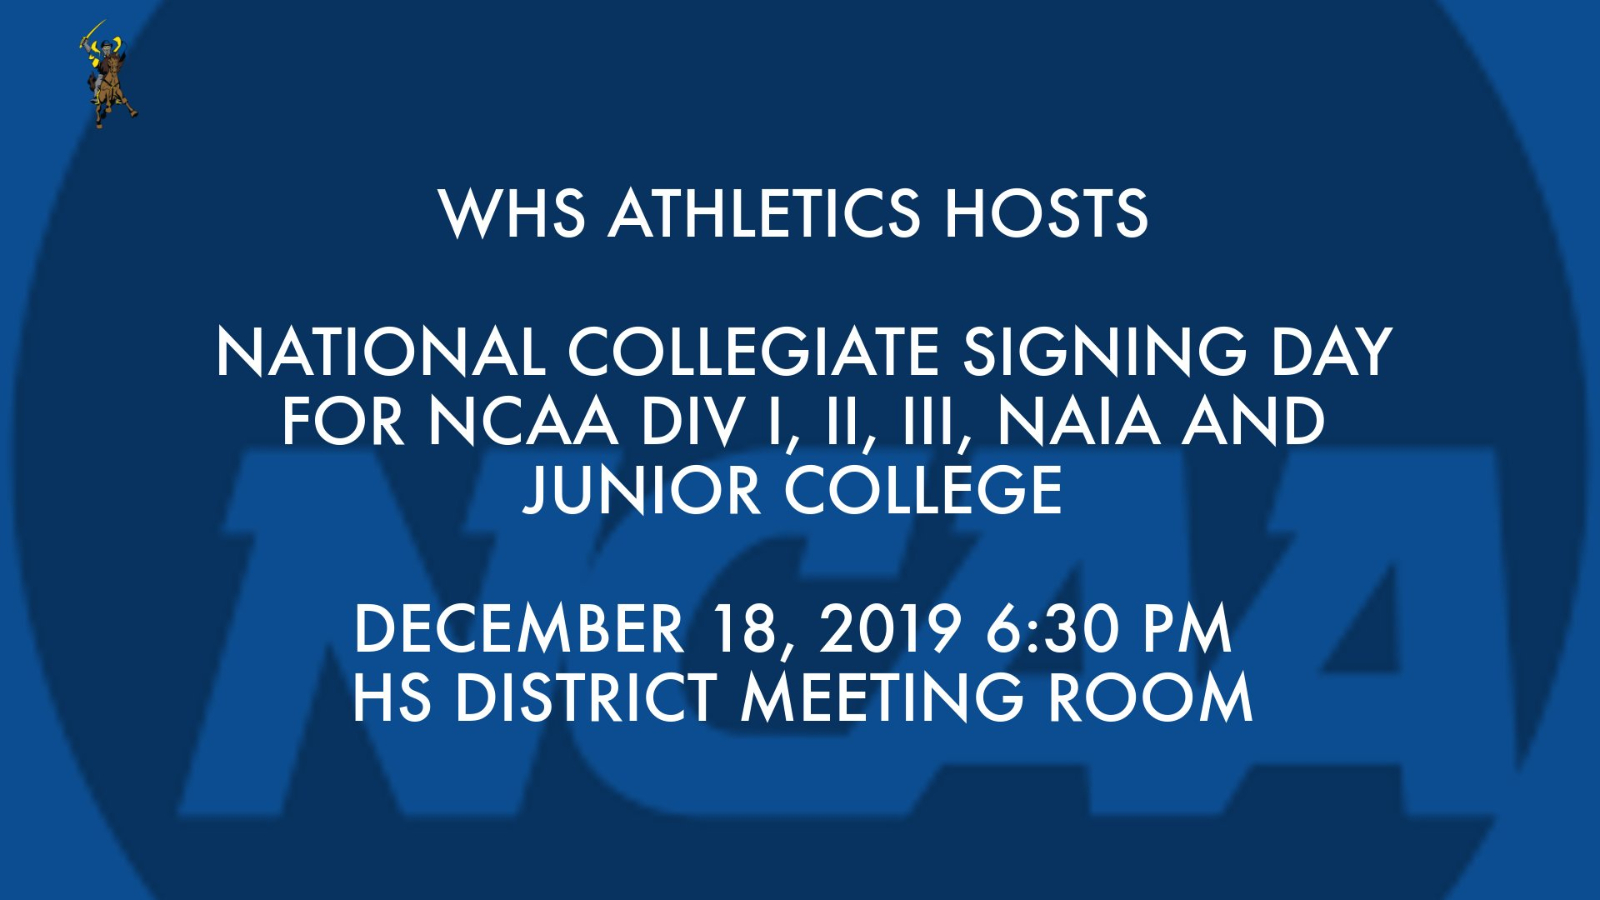 WHS HOSTS COLLEGIATE NATIONAL SIGNING DAY FOR STUDENT ATHLETES